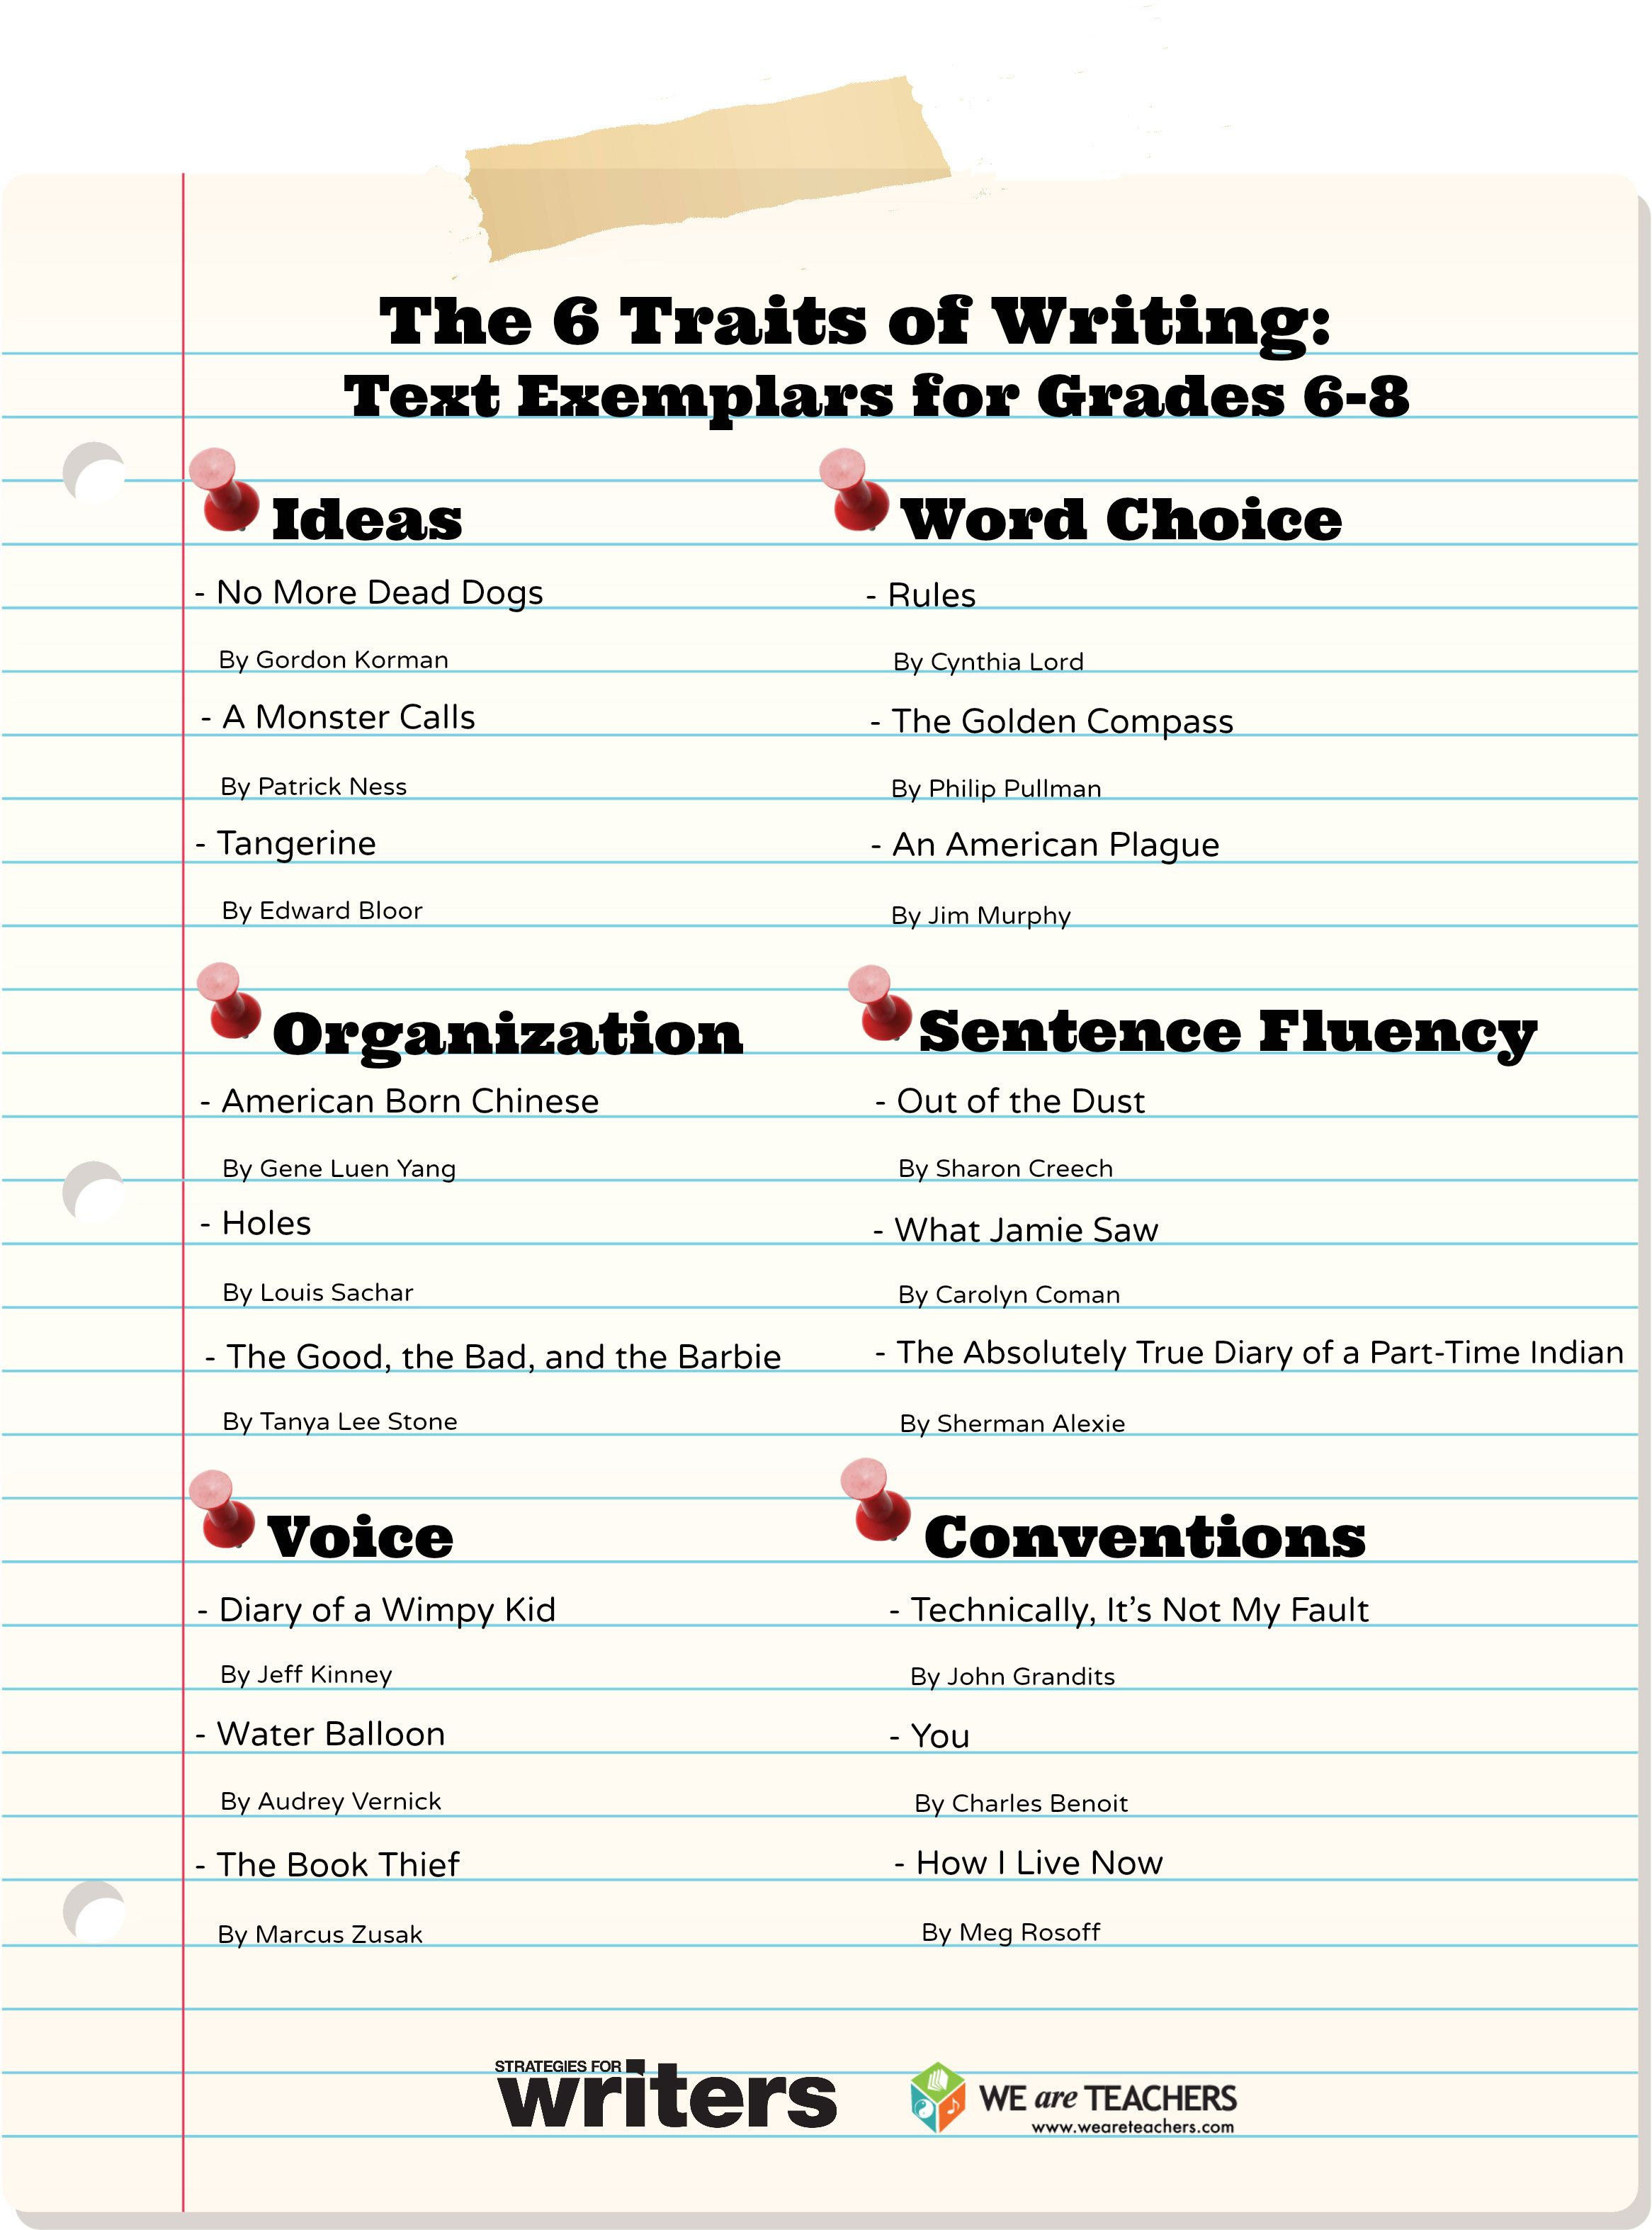 The Six Traits Of Writing Text Exemplars For Grades 6 8 6 Traits Of Writing 6th Grade Writing Writing Lessons [ 3147 x 2332 Pixel ]